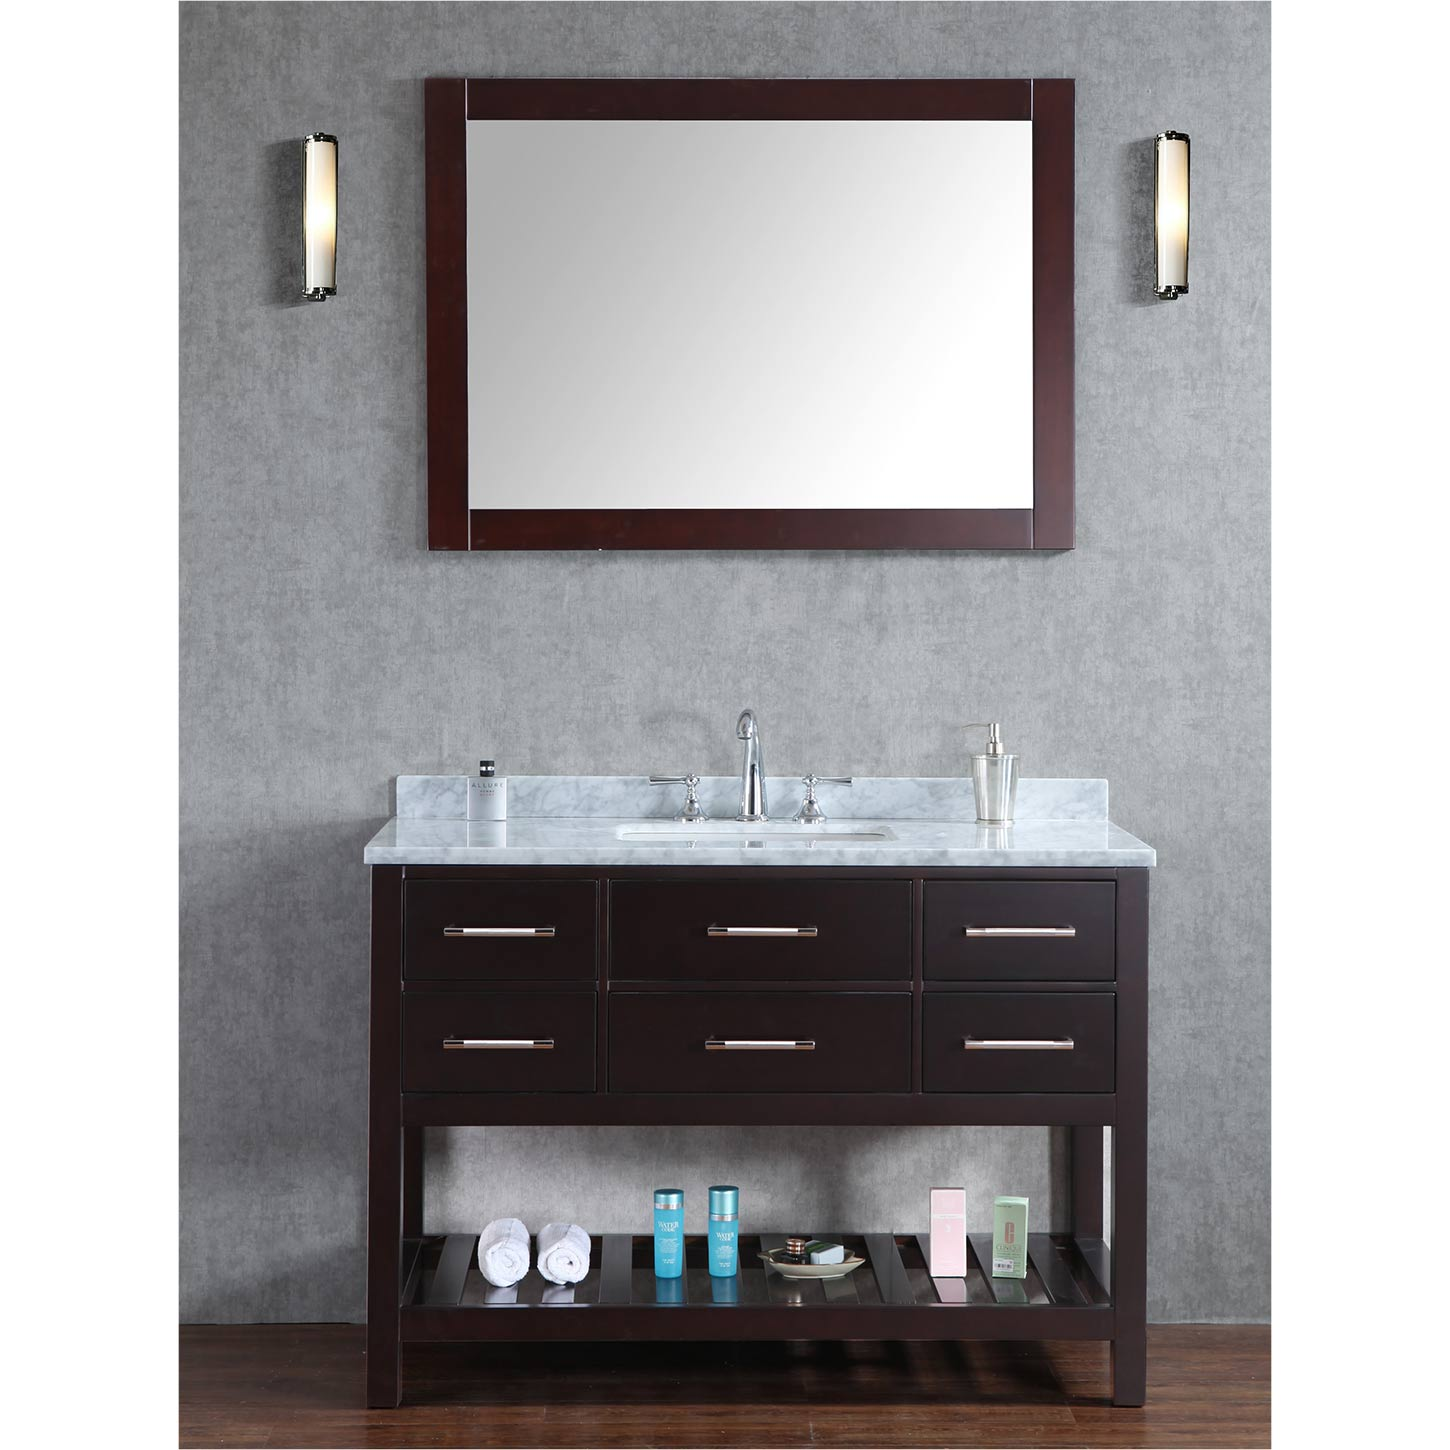 Buy Antonia 48 Inch Solid Wood Single Bathroom Vanity In Espresso Hm 13002 48 Wmsq Esp